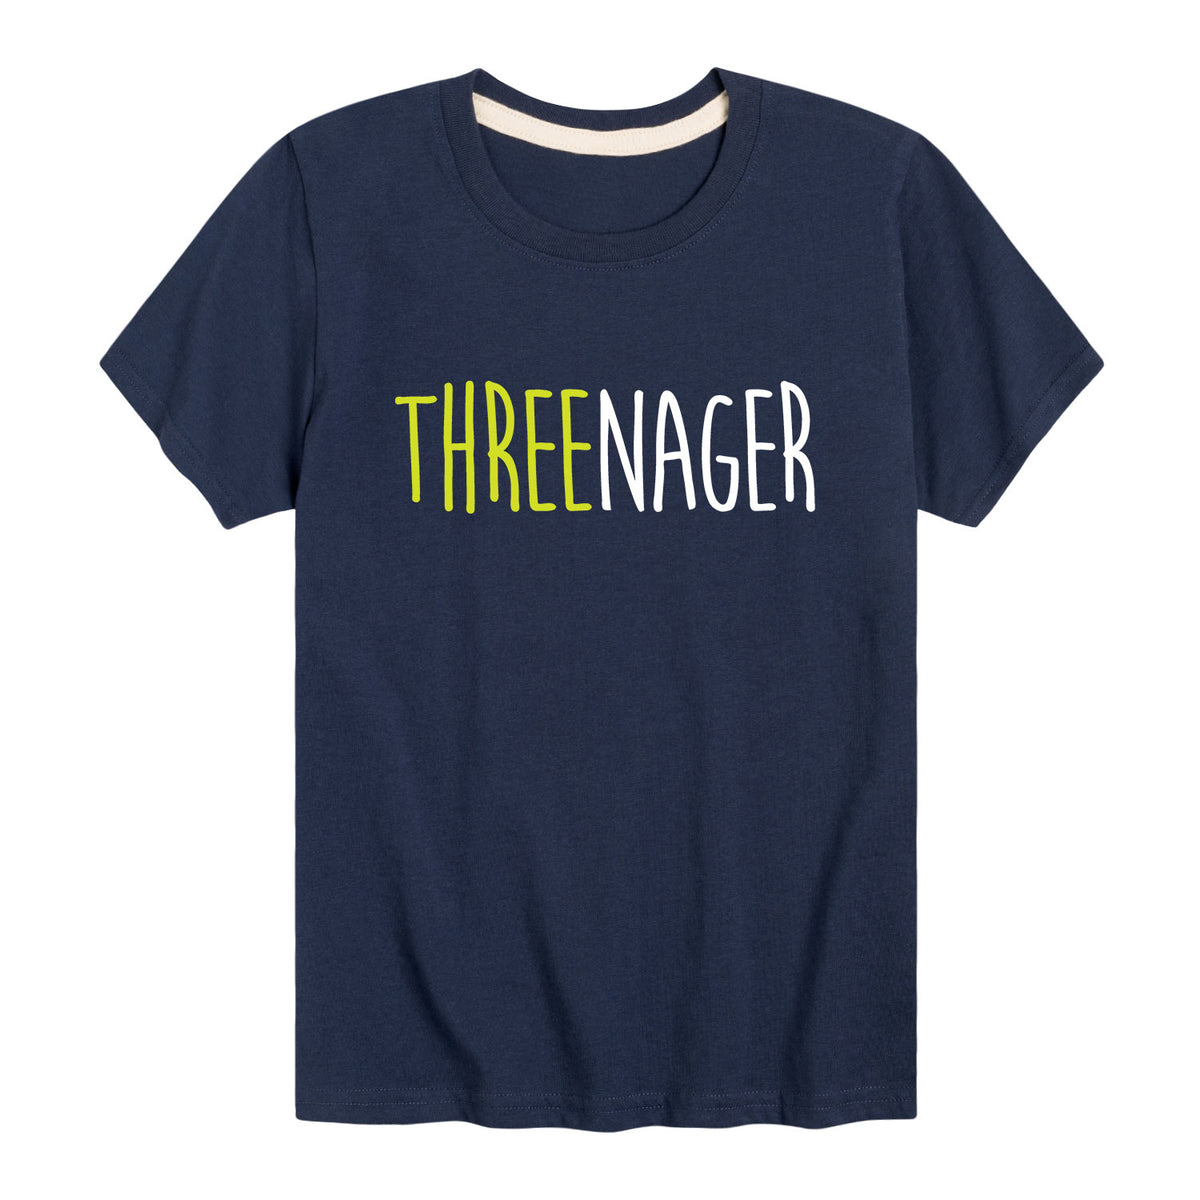 Threenager - Youth & Toddler Short Sleeve T-Shirt